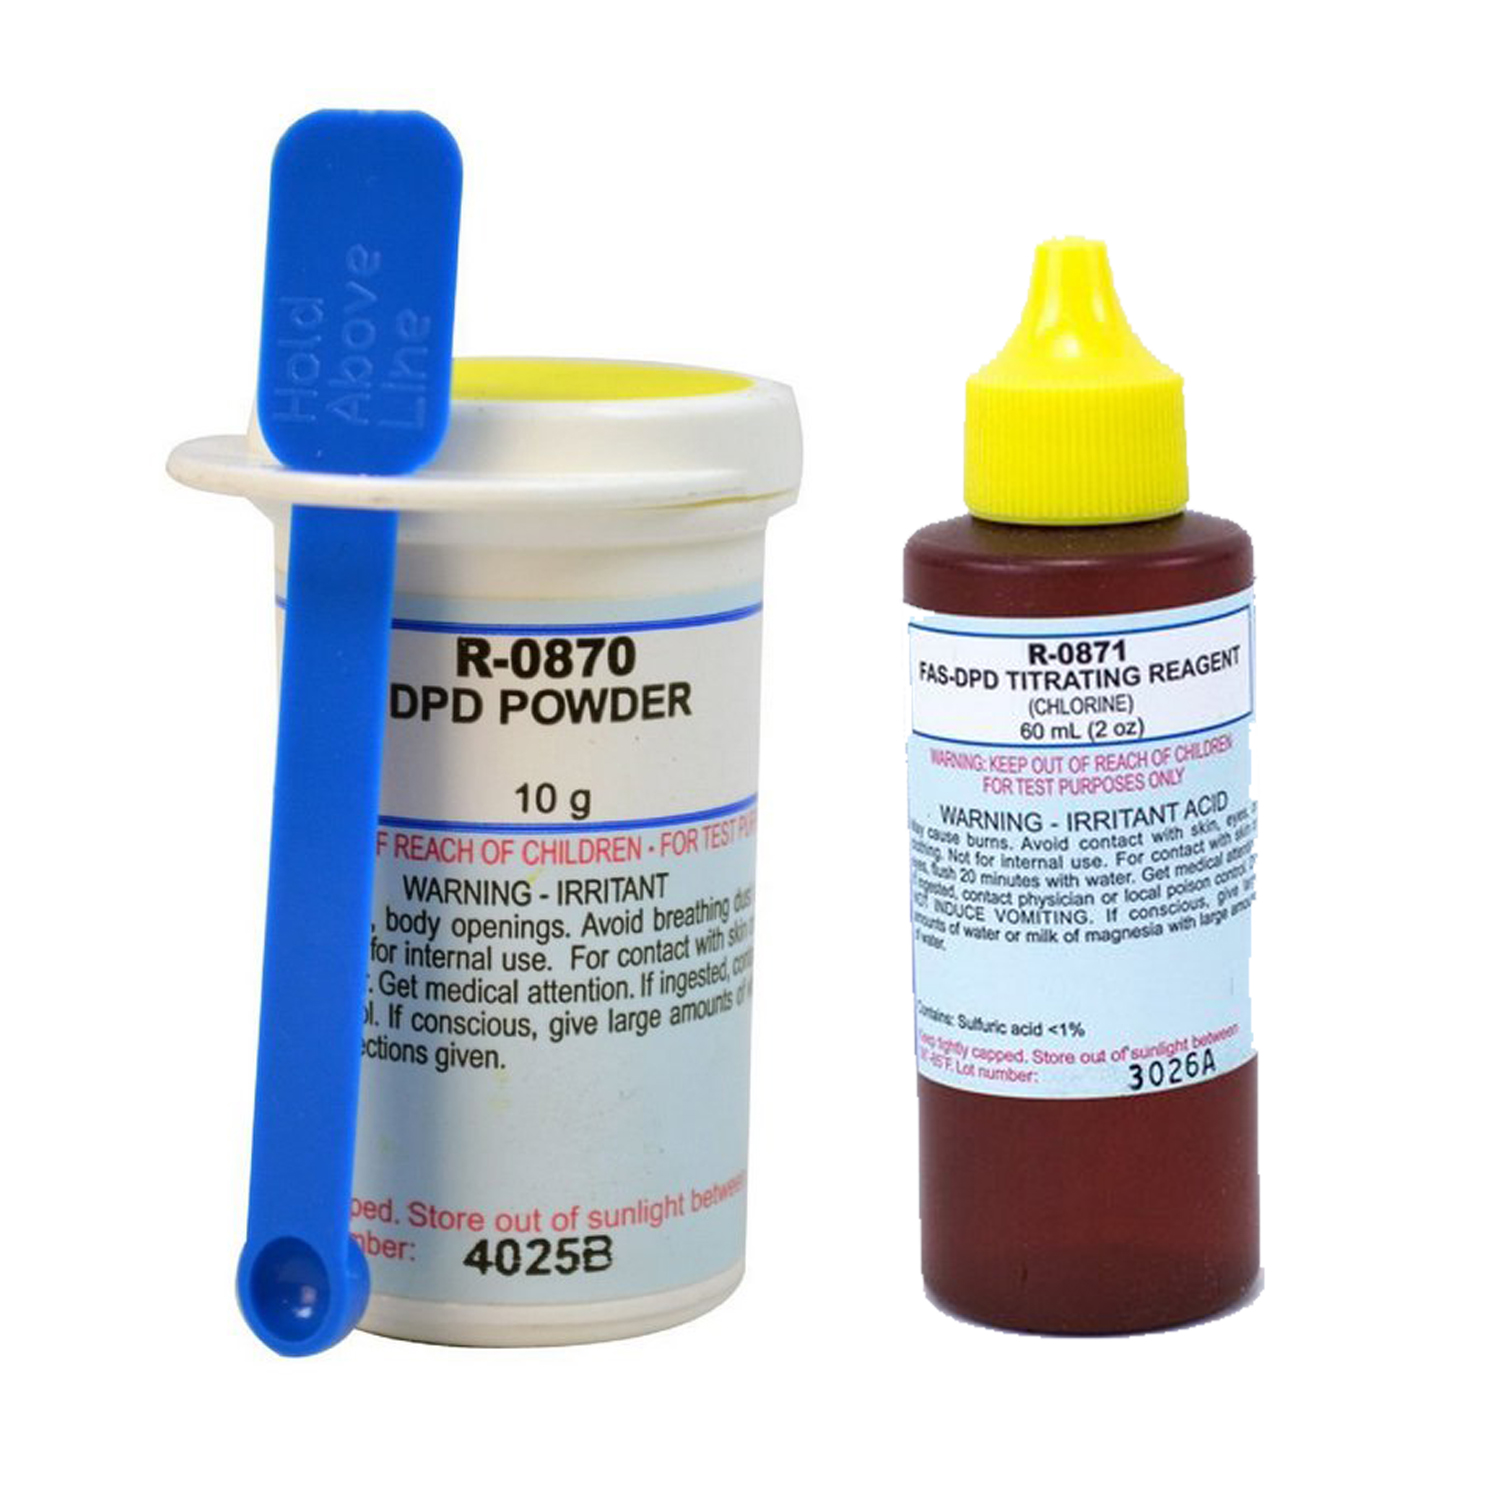 Details about Taylor Replacement DPD 10-Gram Powder w/ 2-Ounce Titrating  Reagent for Chlorine